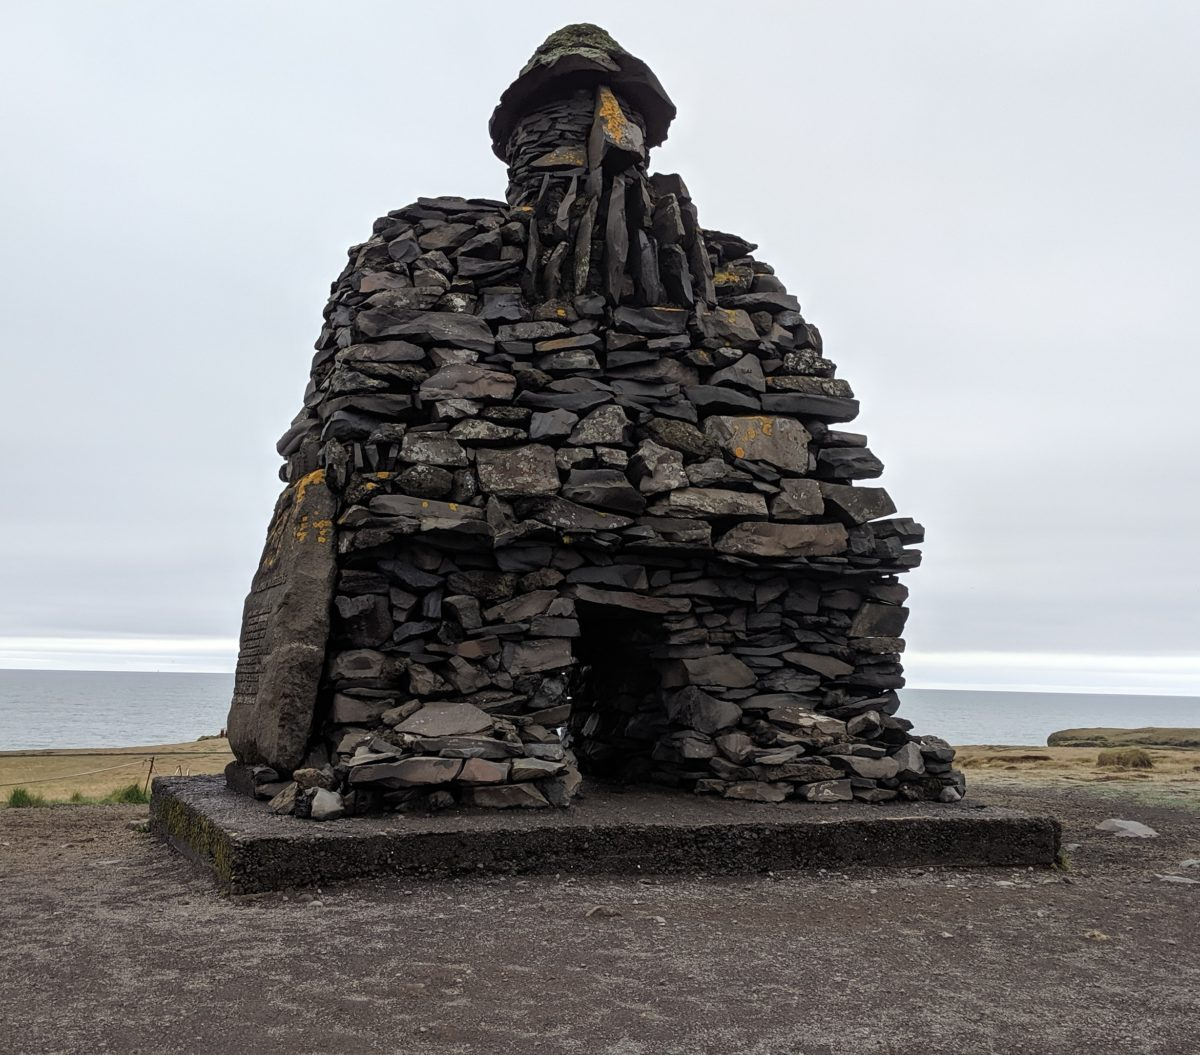 statue of ancient viking legend